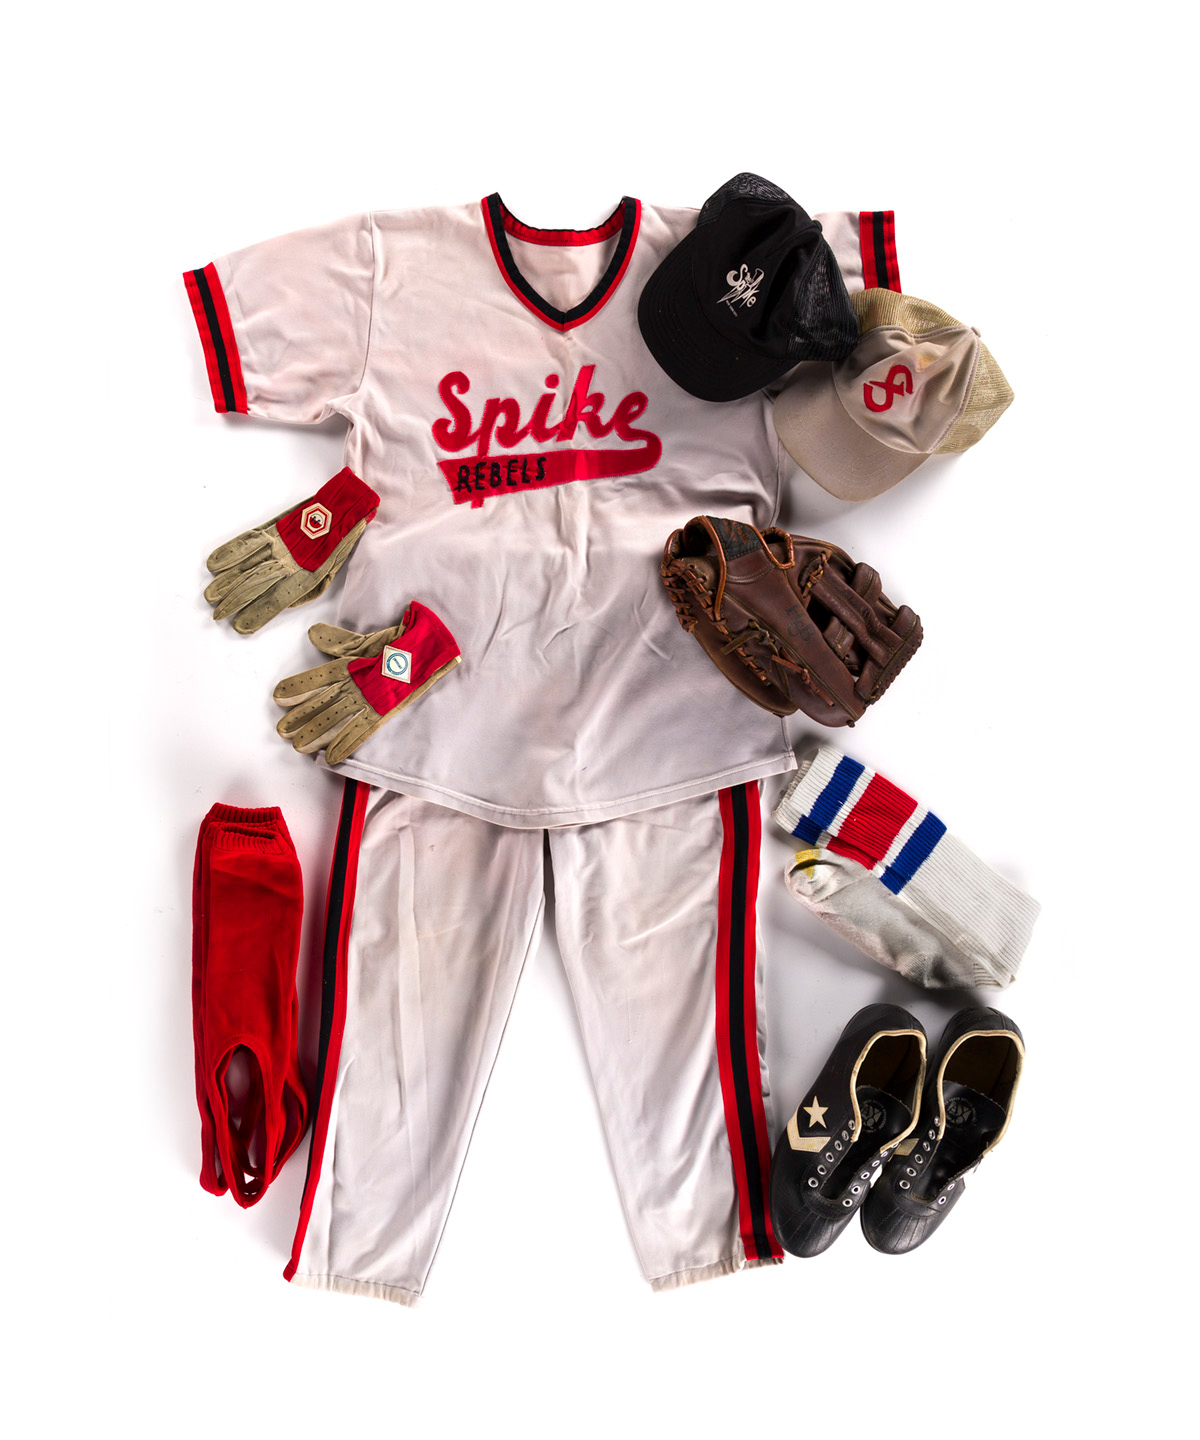 THE SPIKE. Complete softball uniform from this renowned New York leather bar.